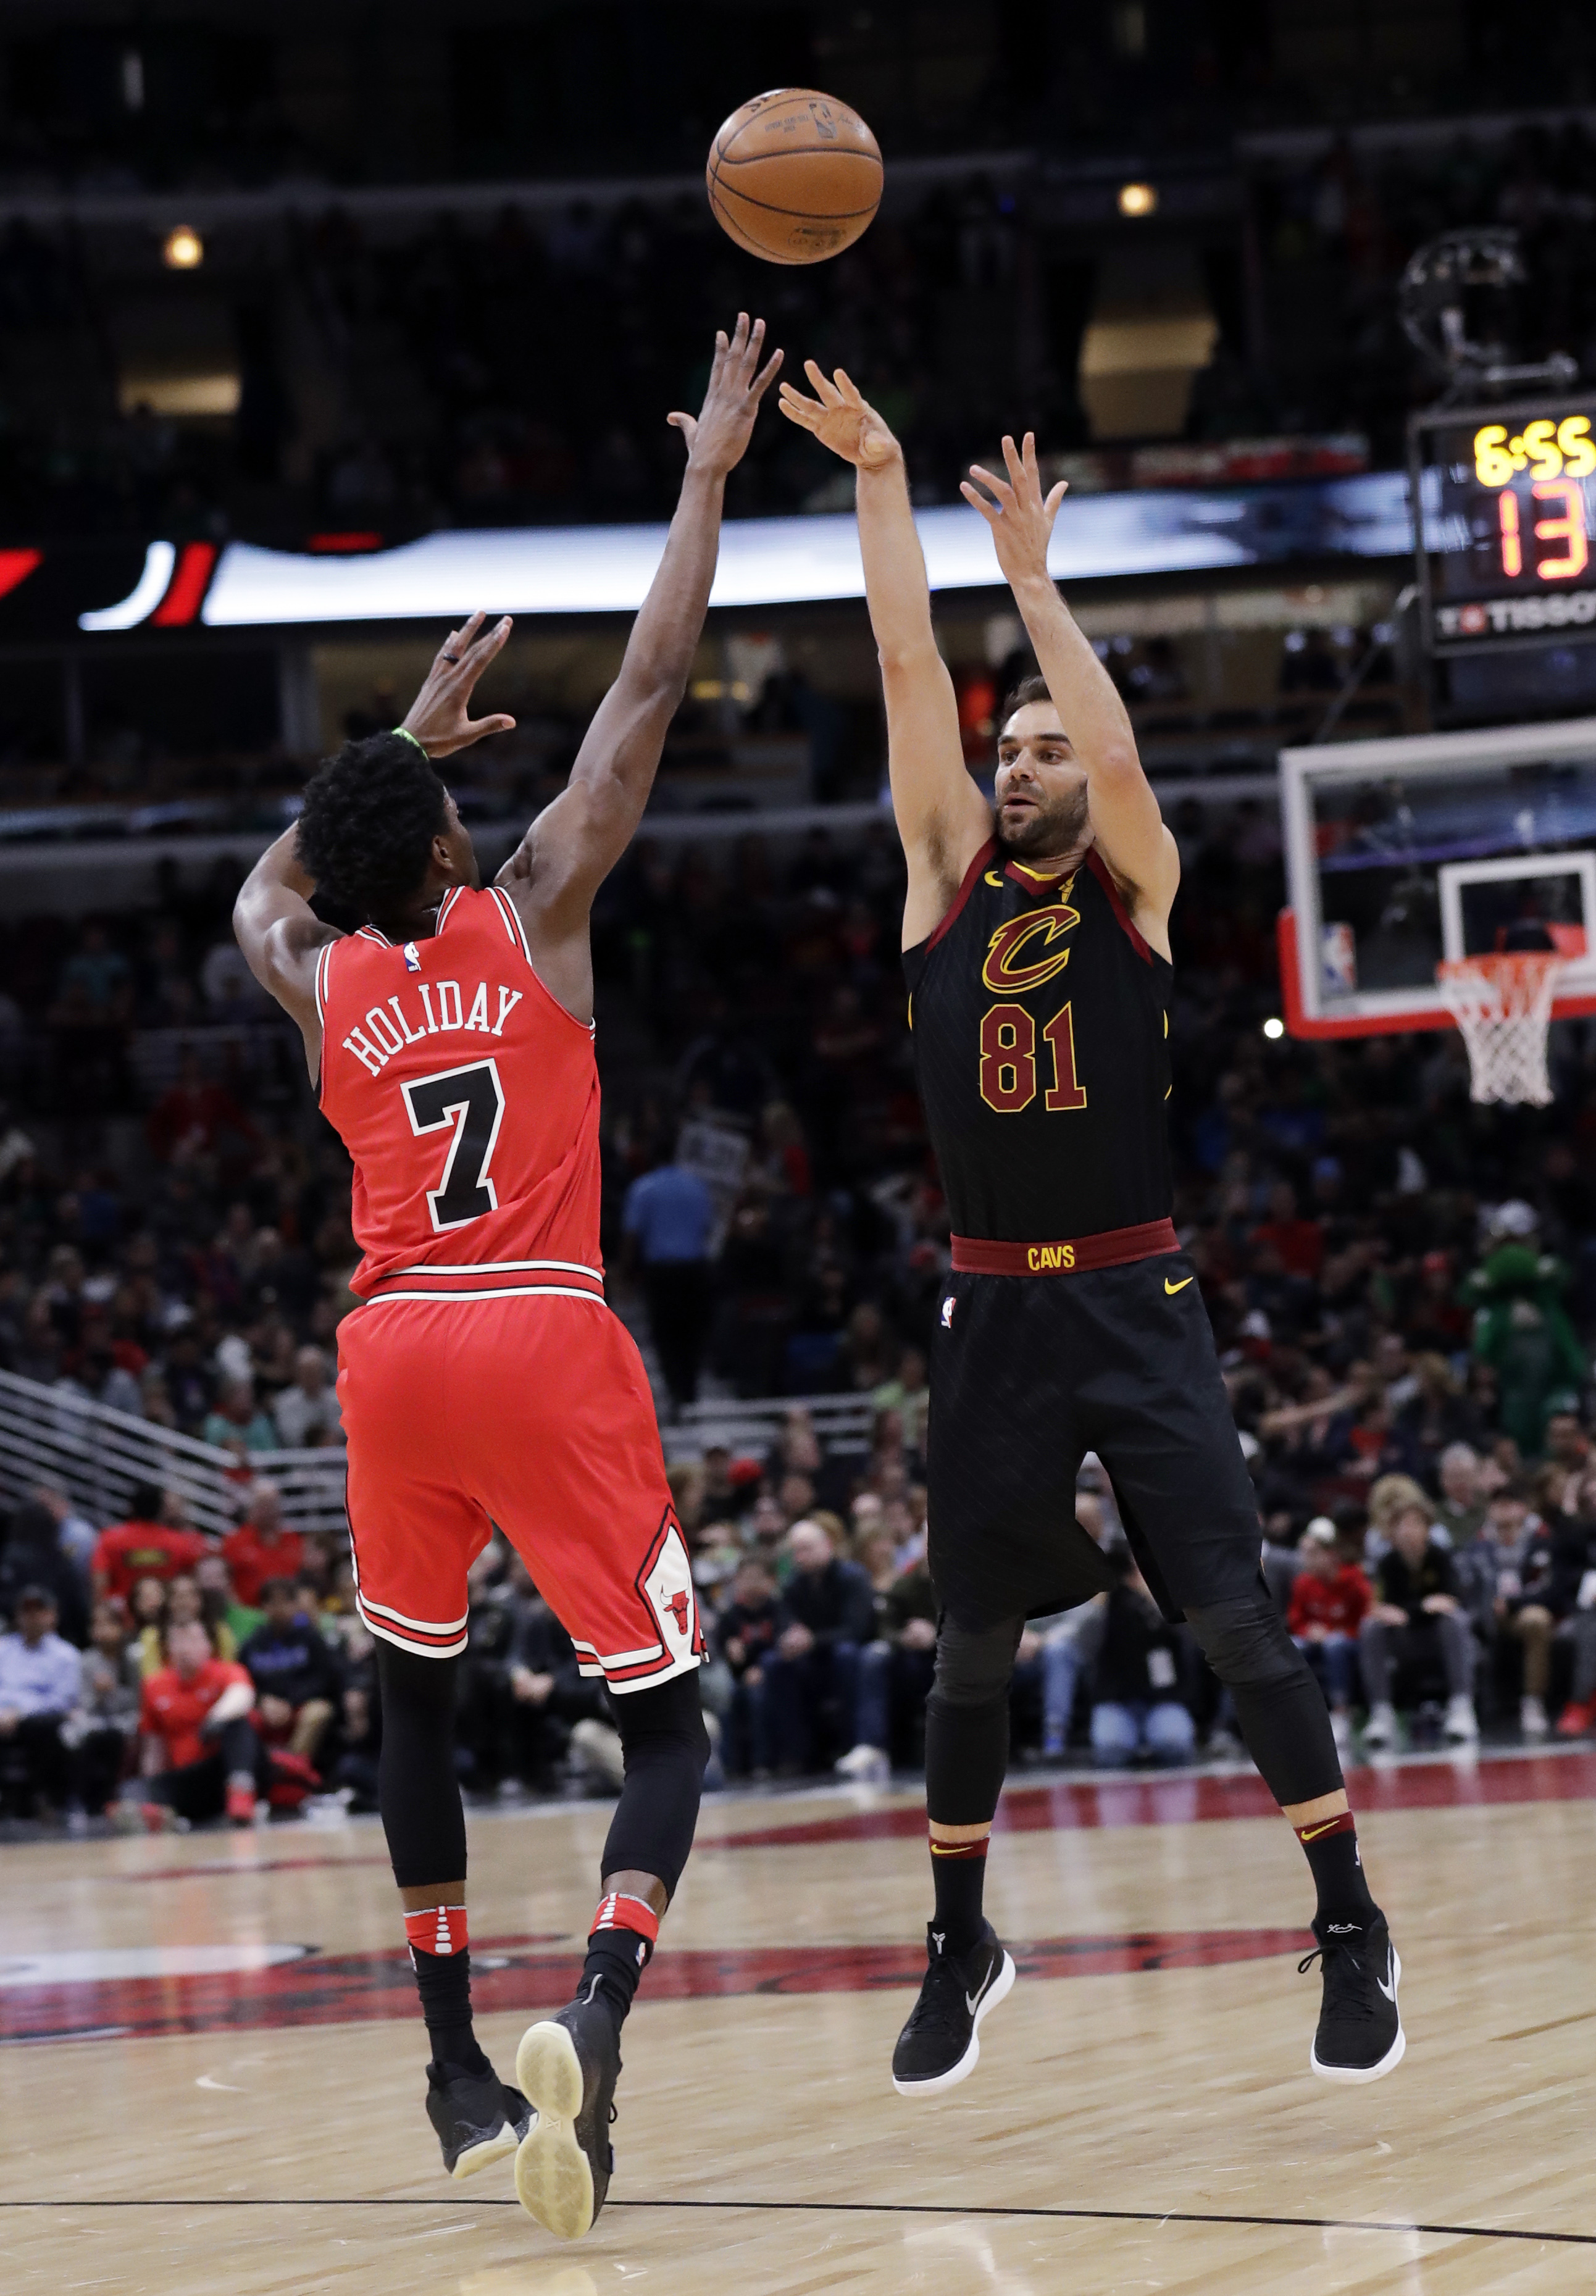 Lebron S 33 Points Guide Cavs Over Bulls The Blade